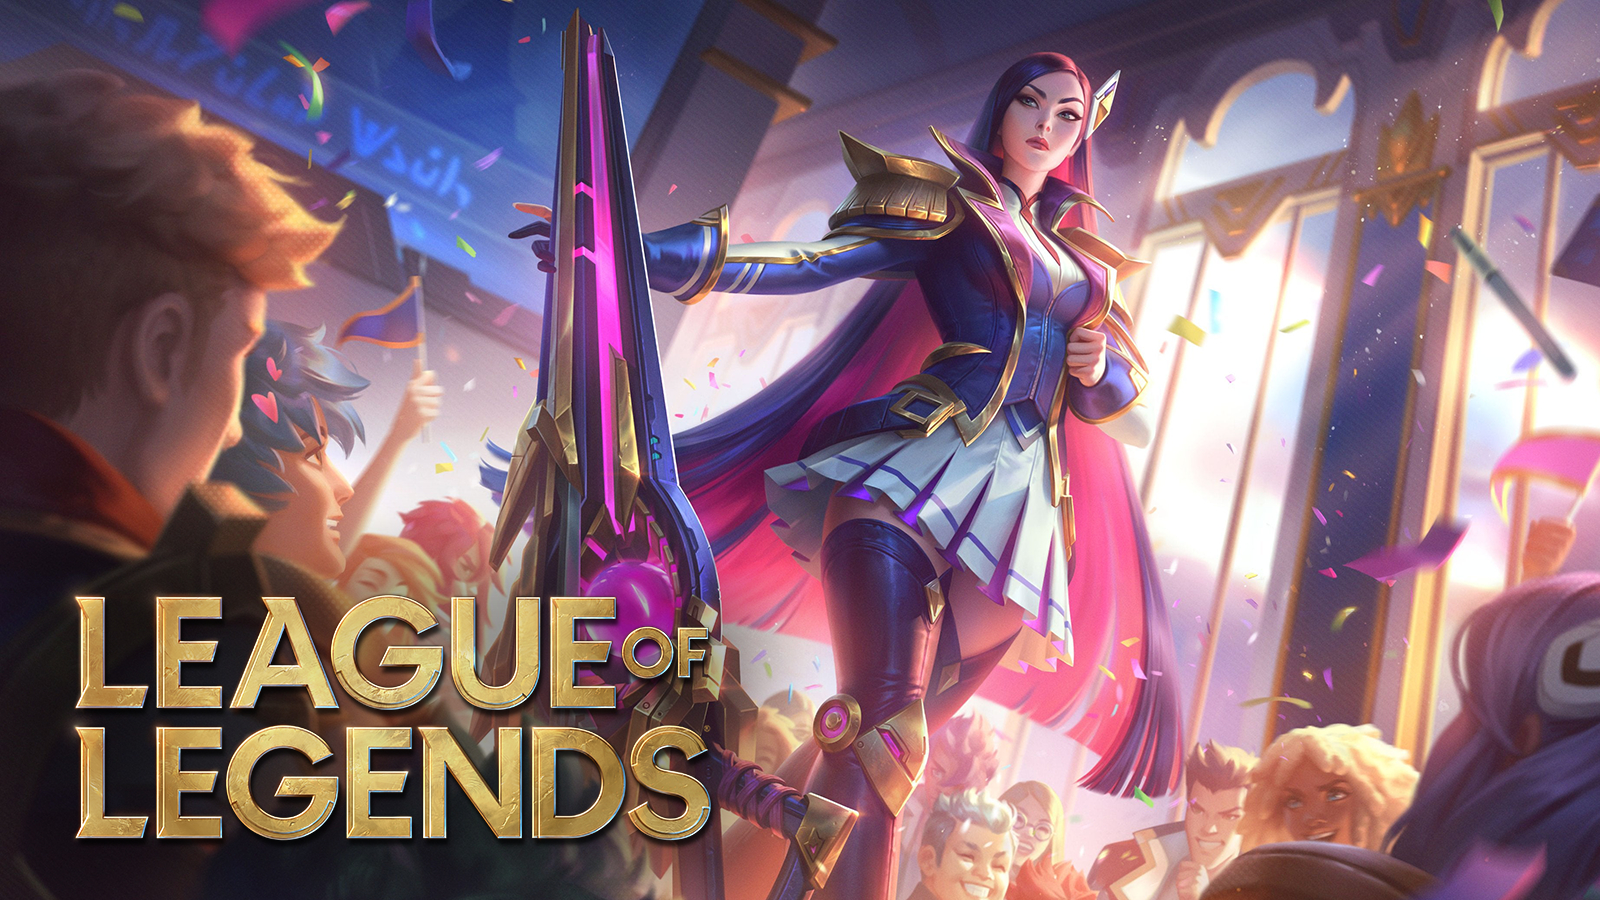 Battle Academia Caitlyn legendary LoL skin League of Legends patch 11.6 notes.